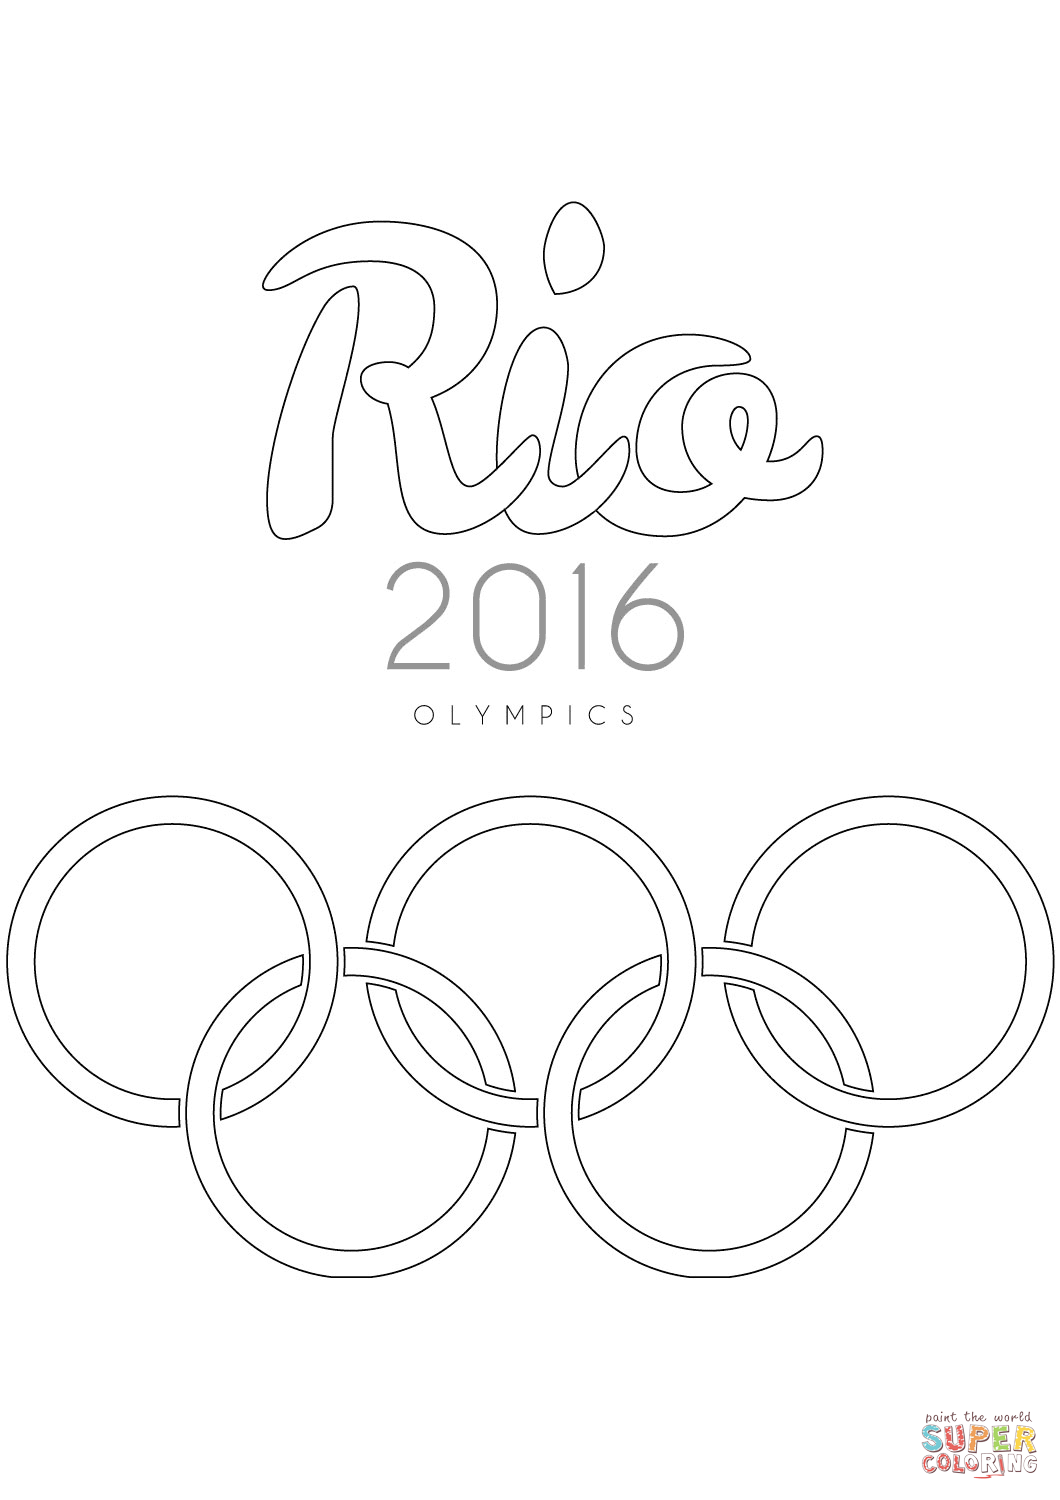 1060x1500 The Olympics Coloring Pages Pictures To Print And Color Of Olympic